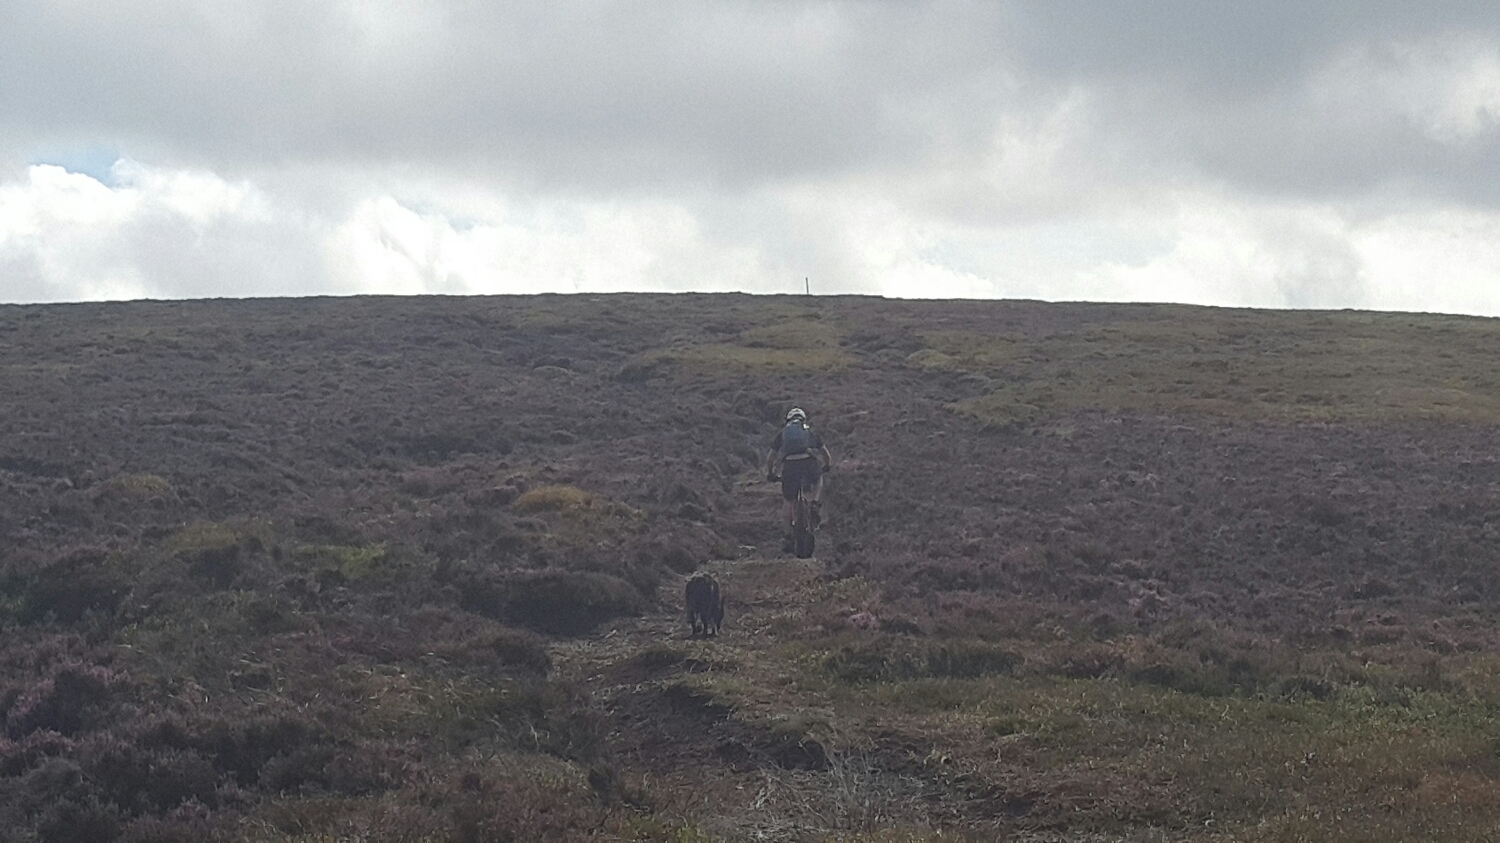 The trail is just a walking track that has worn through the heather exposing the peat.  Boggy in places. A nice steady gradient but slow due to the soft ground .